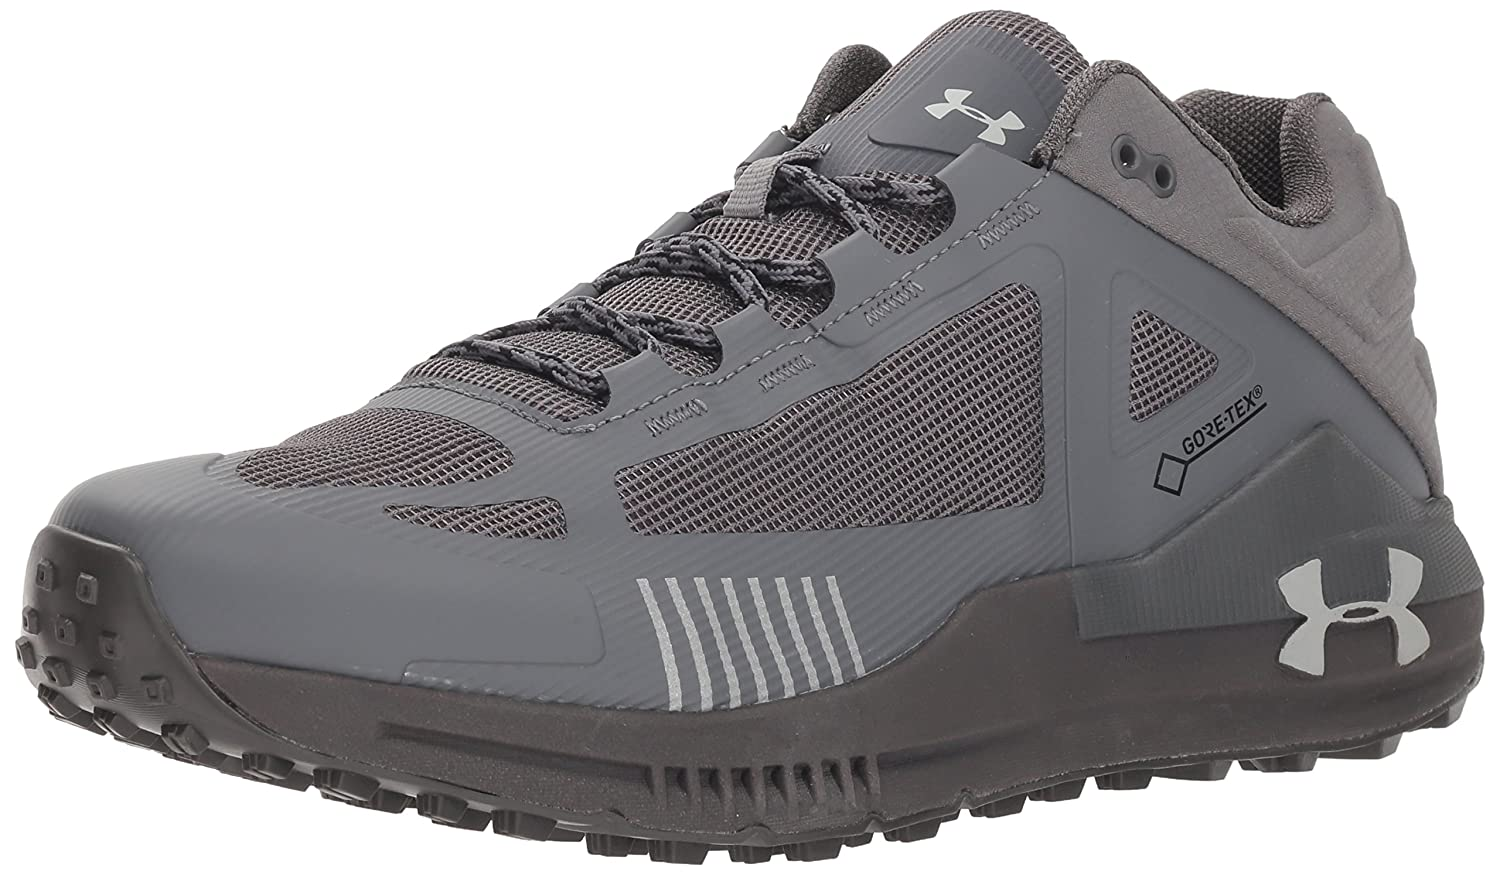 Under Armour Verge 2.0 Low Gore-Tex Hiking Boot B076SJDGTQ 10.5 M US|Graphite (101)/Charcoal